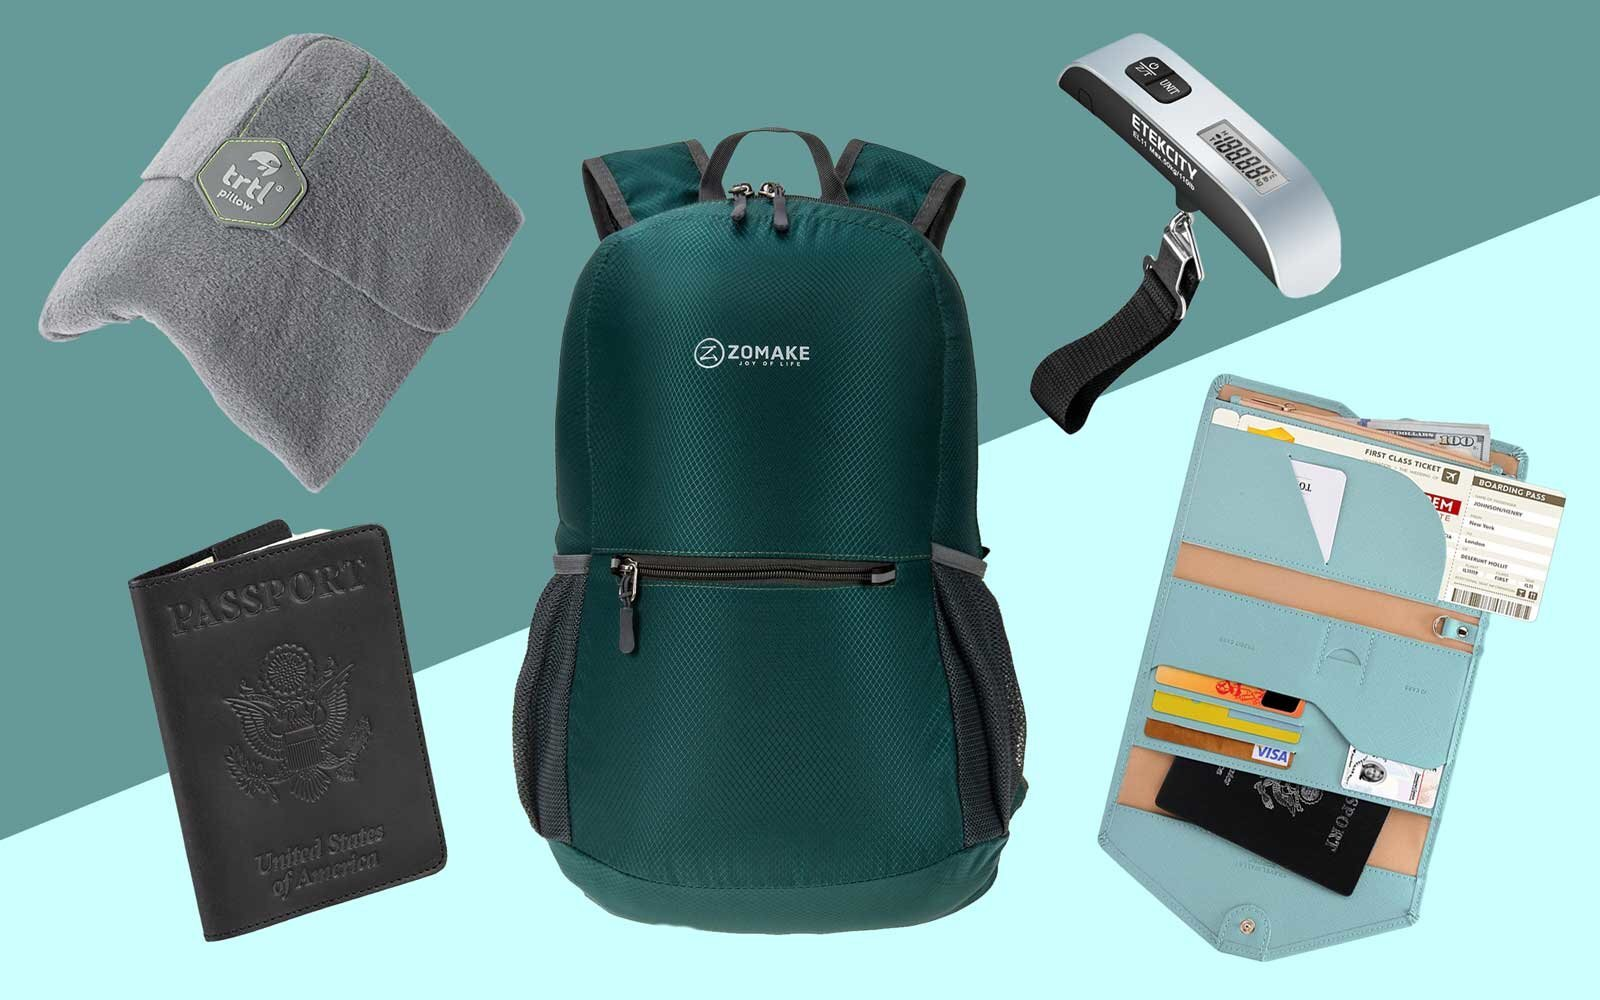 cc9d8a841 The Best-selling Travel Products on Amazon | Travel + Leisure